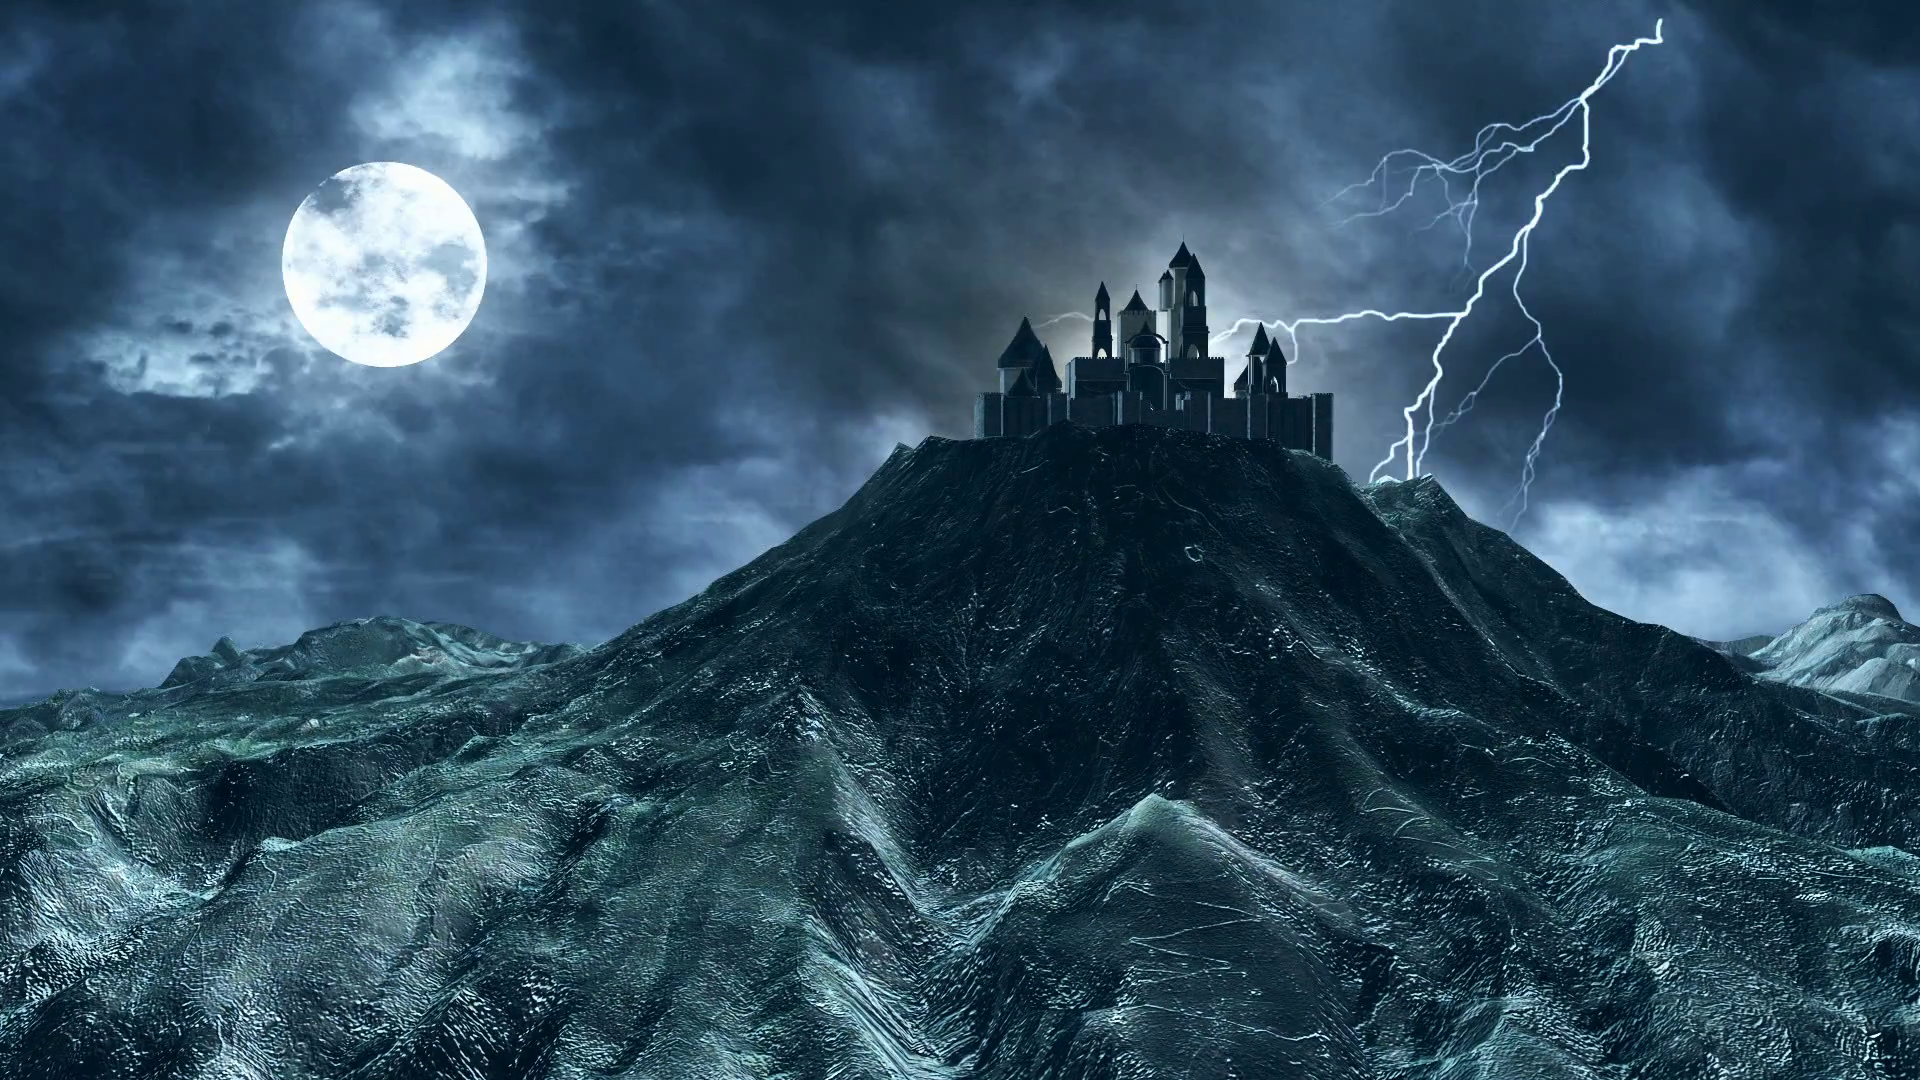 videoblocks-haunted-castle-fort-mansion-house-palace-on-a-spooky-hill-hilltop-horror-full-moon-cloudy-sky-lightening-storm-house-on-haunted-mountain_ss_auuxlb_thumbnail-full02